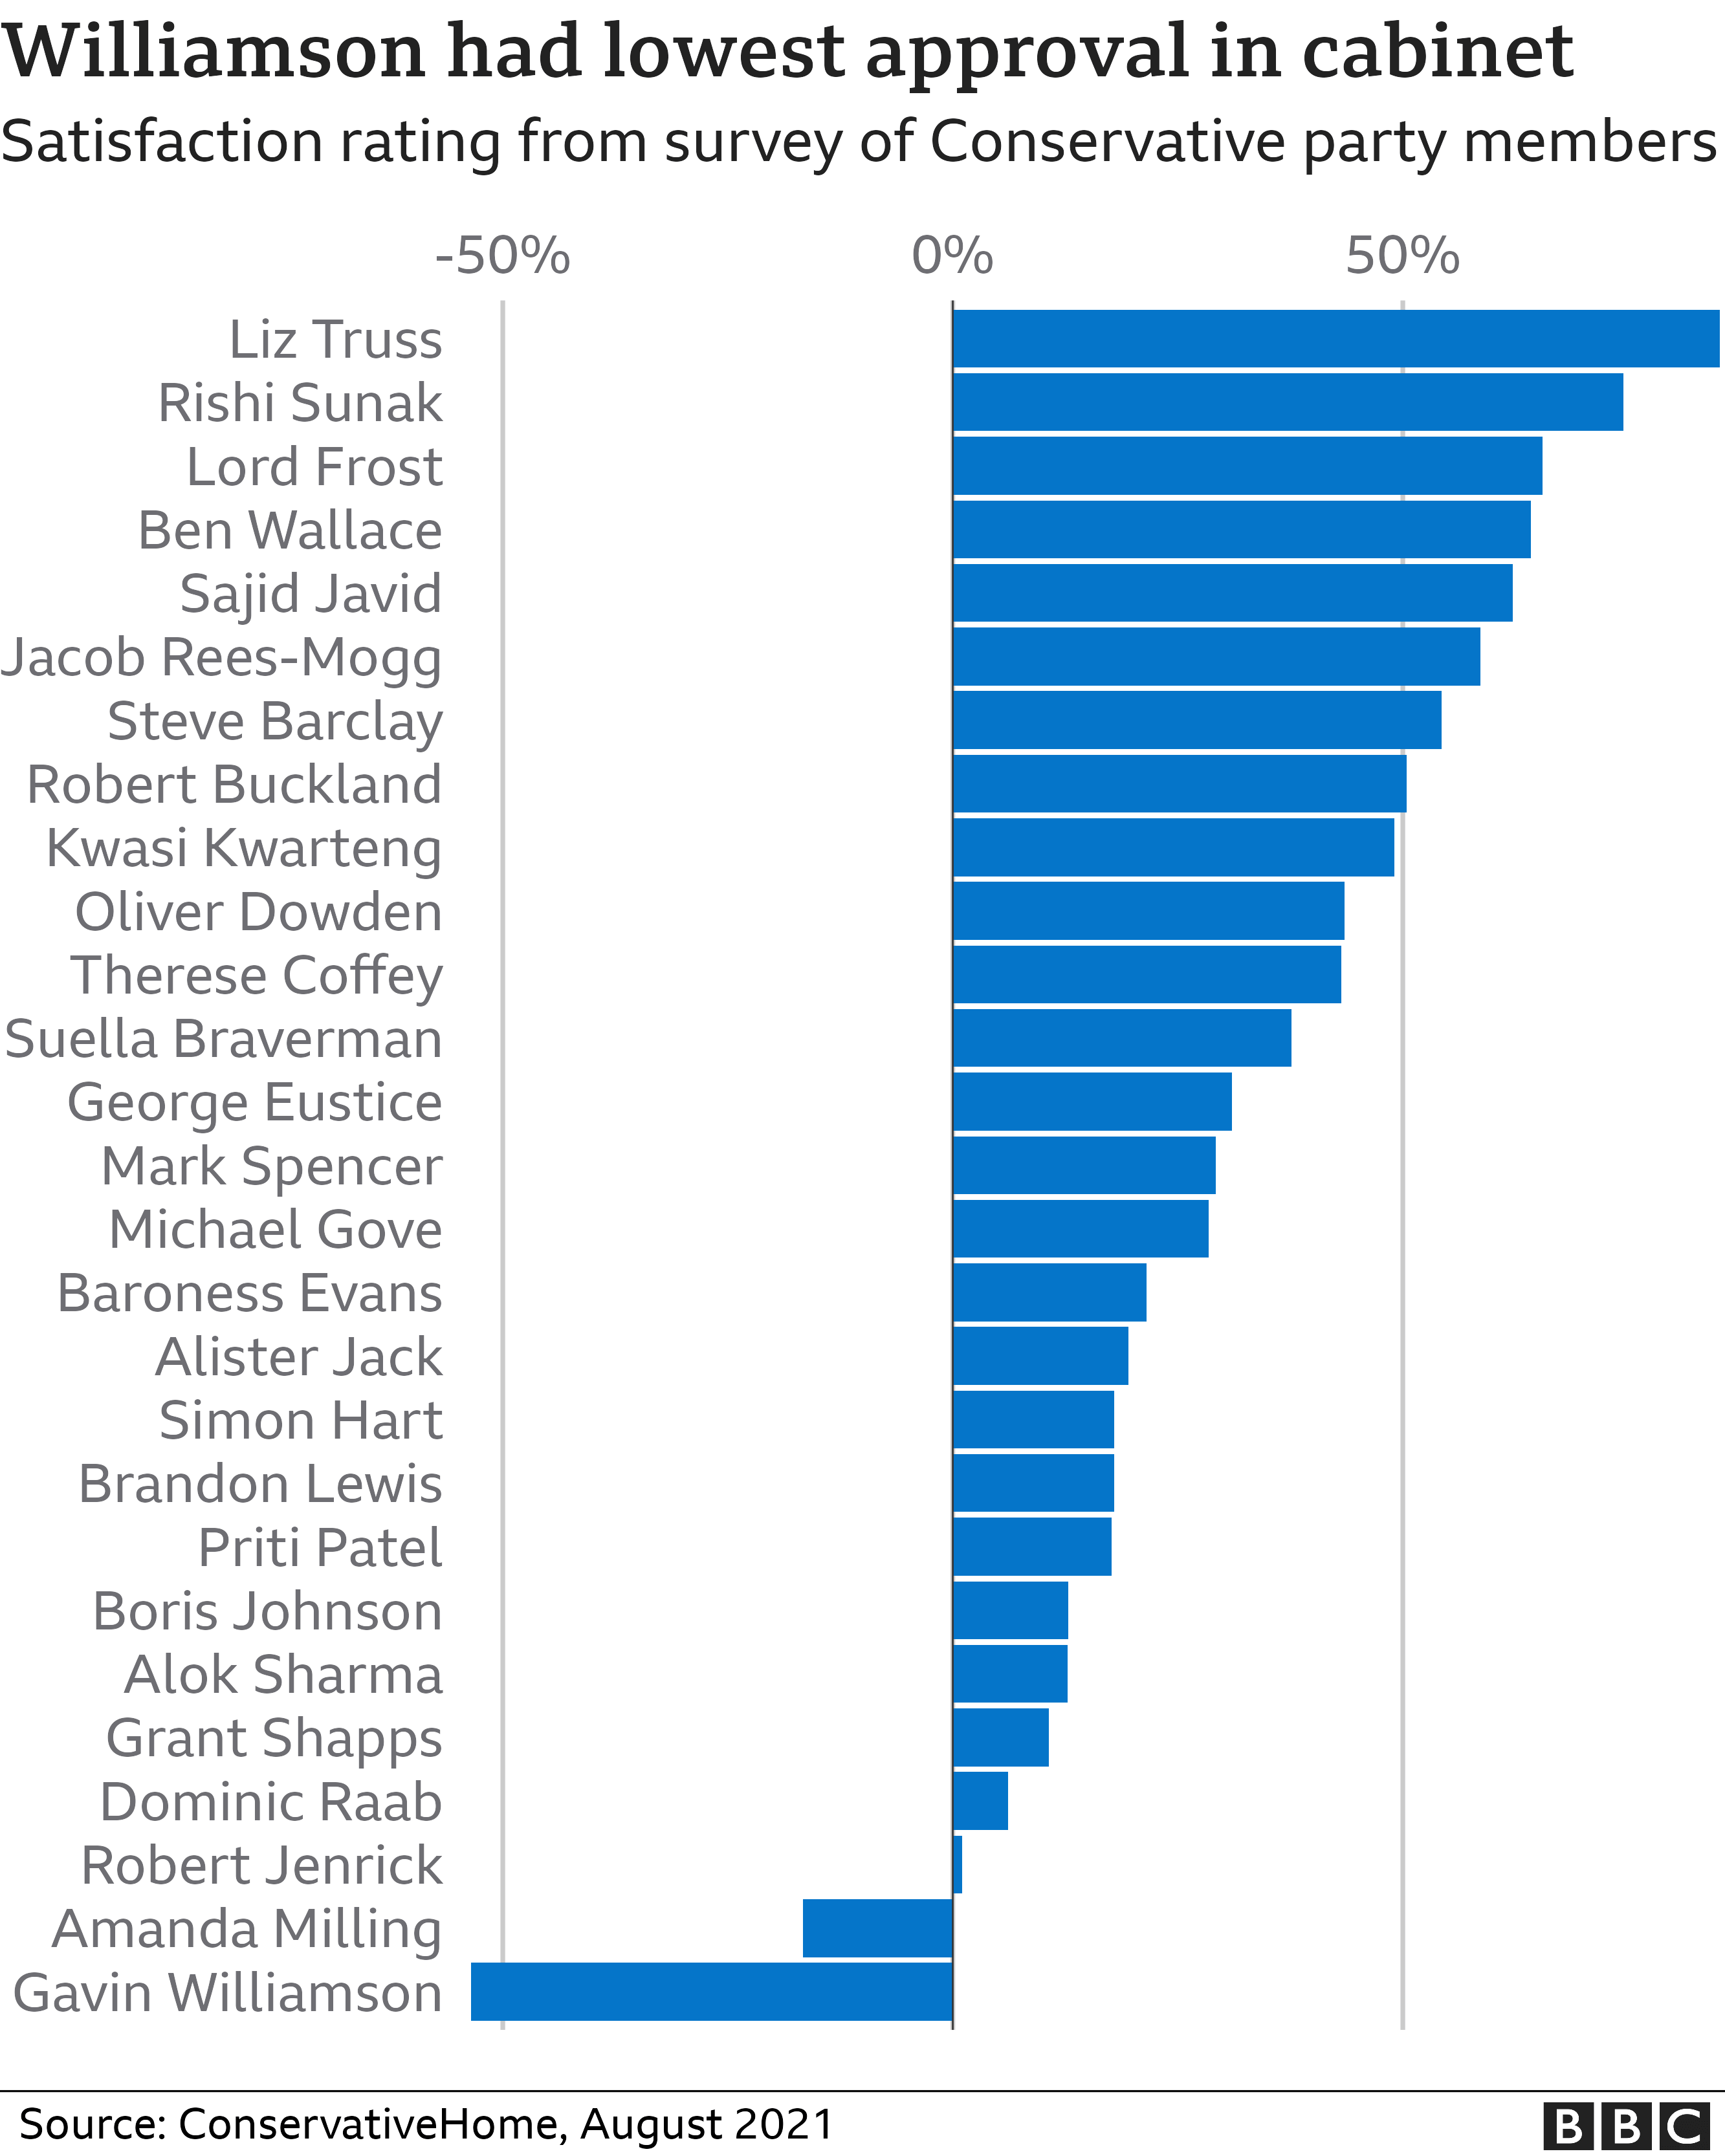 Chart showing satisfaction ratings for the cabinet according to a survey of Conservative party members